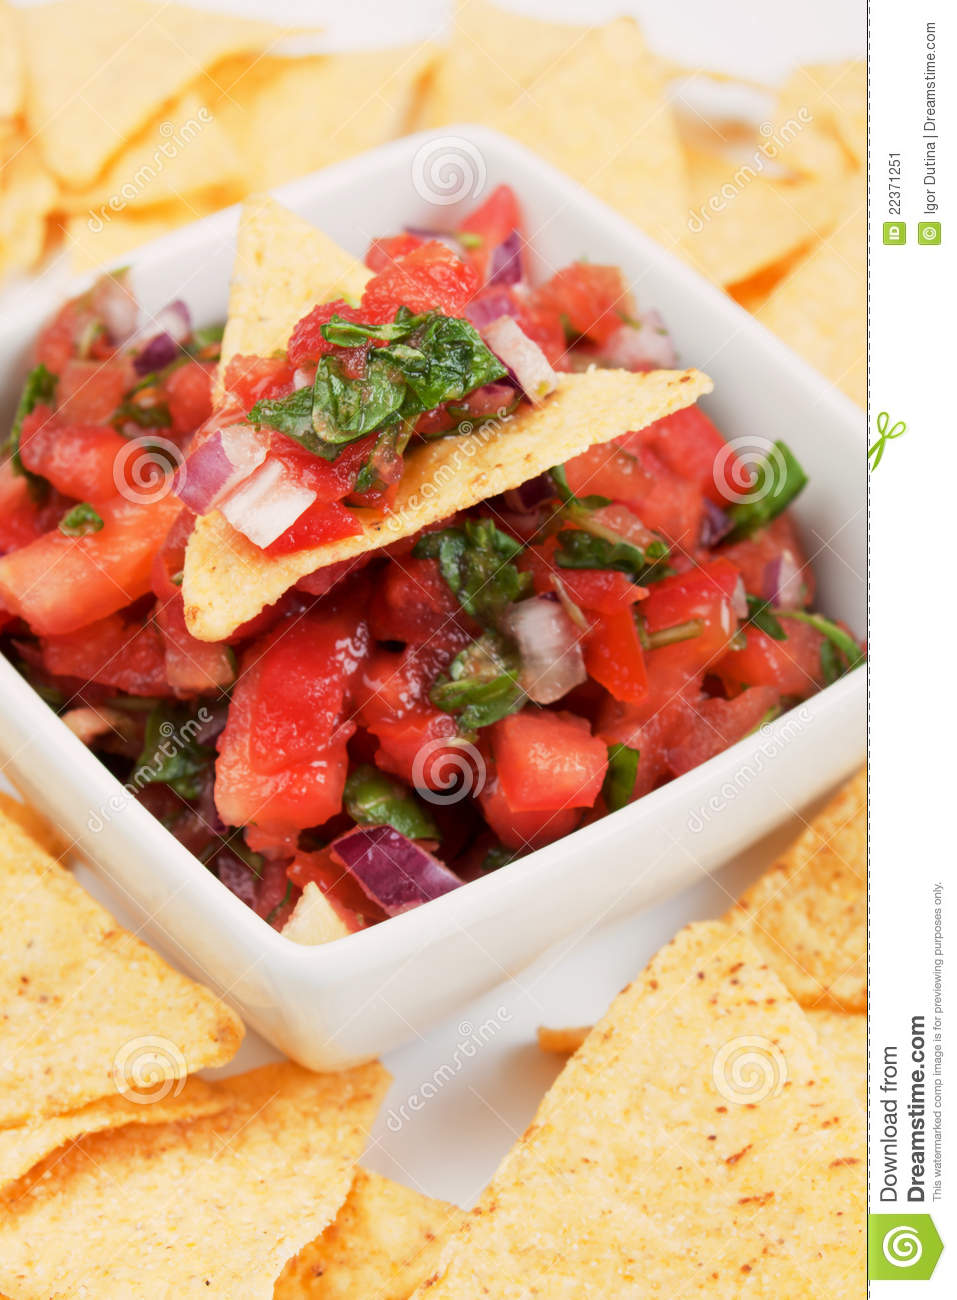 Nachos Corn Chips With Homemade Salsa Stock Image